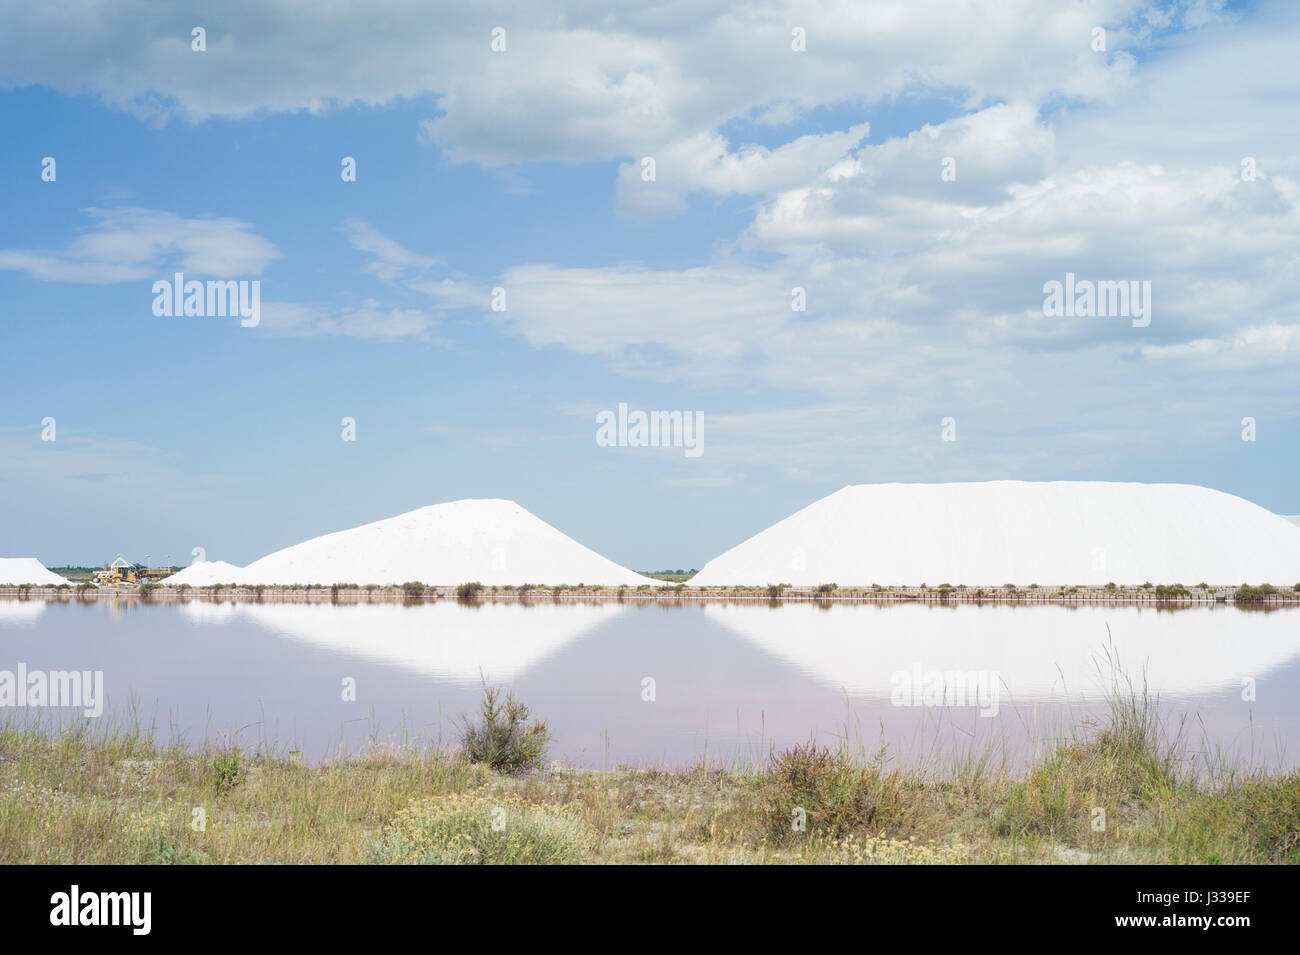 Salt mountains in the salt marshes, Aigues-Mortes, Camargue, Gard, Languedoc-Roussillon, France - Stock Image